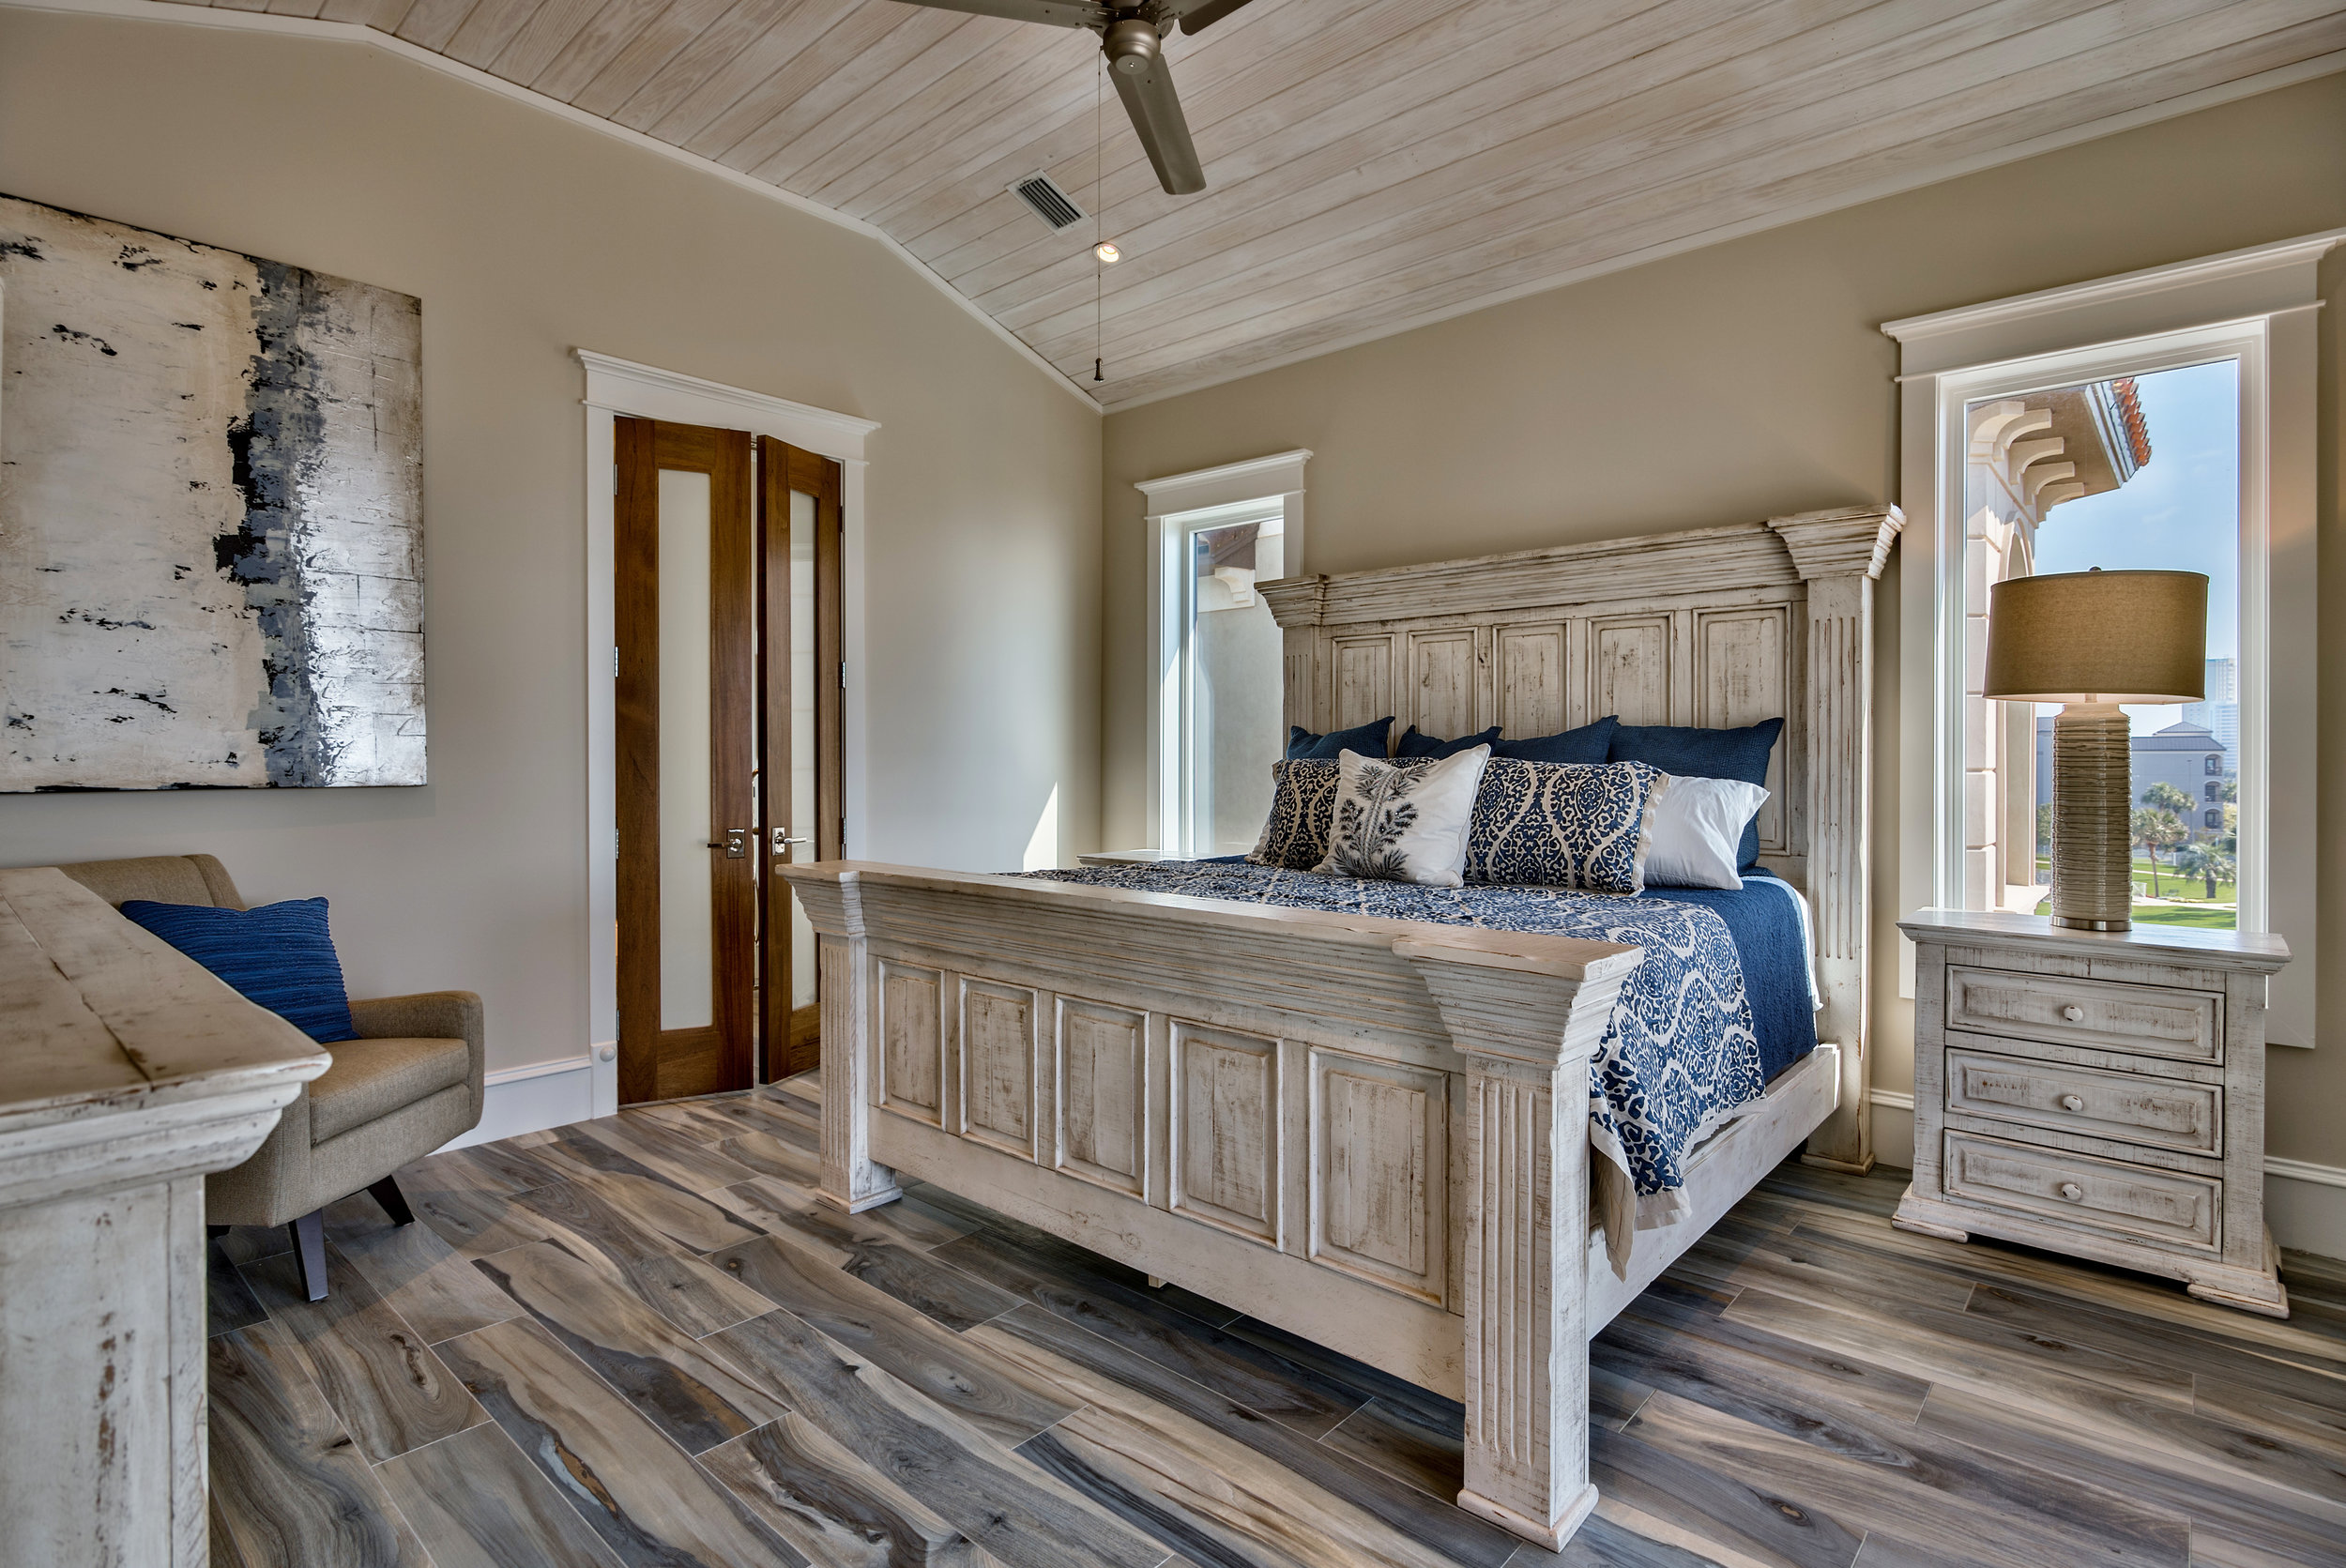 trinity home designs offers design services ranging from spatial arrangement hardware textile selection interior exterior color schemes - Trinity Home Design